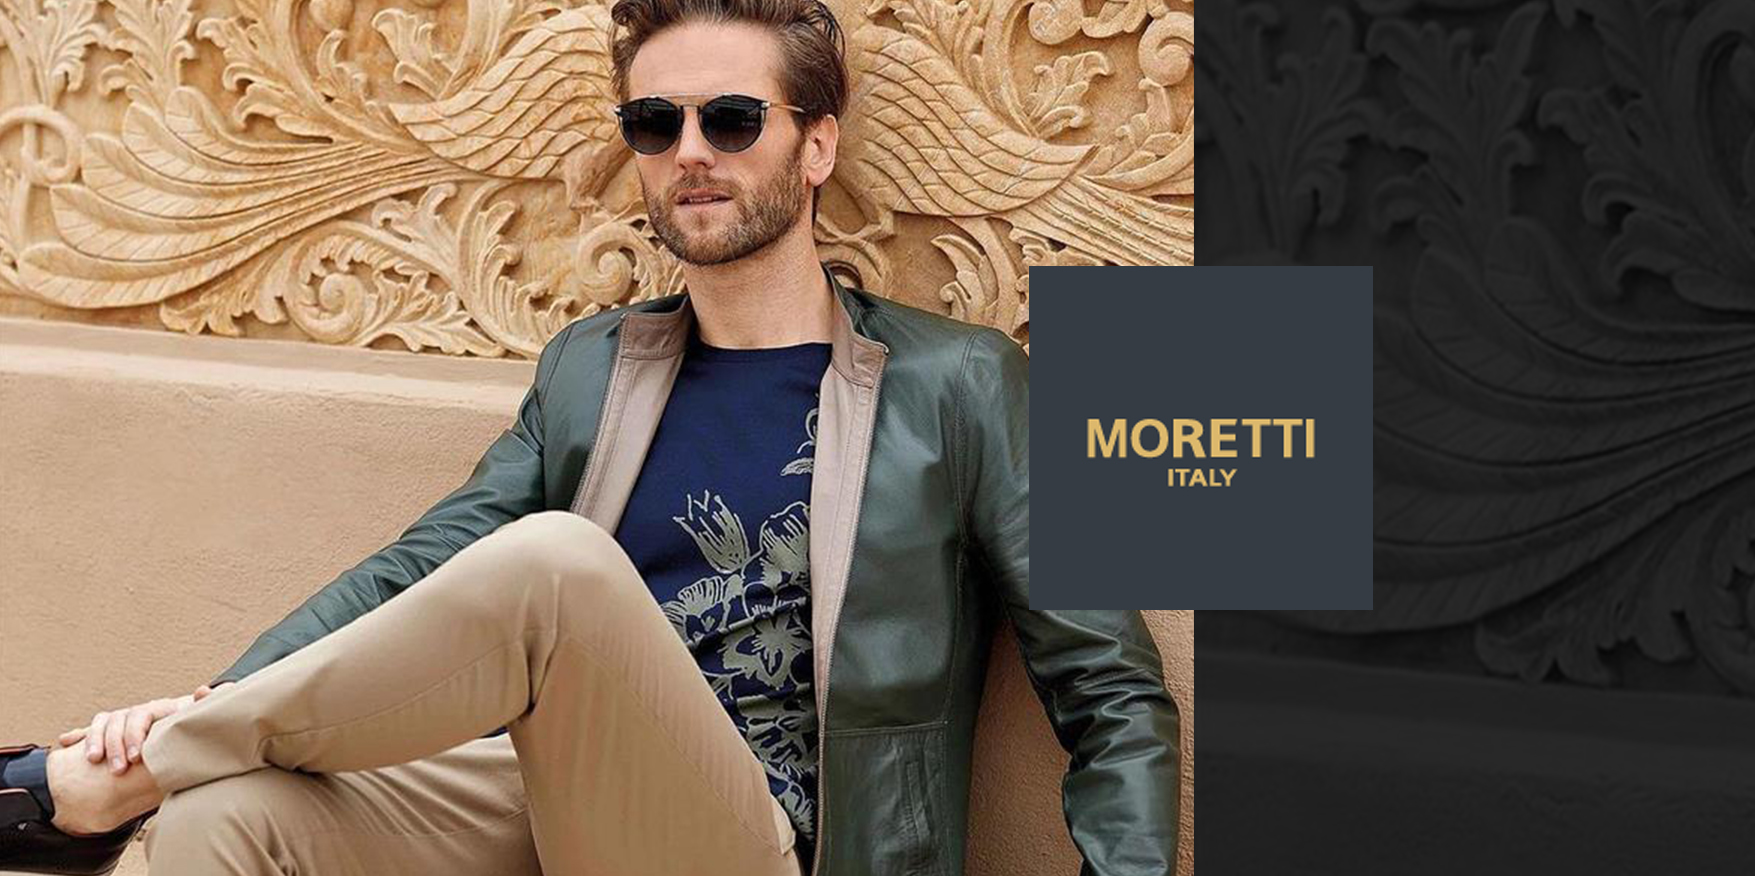 New! Moretti Italy at Avenue Mode